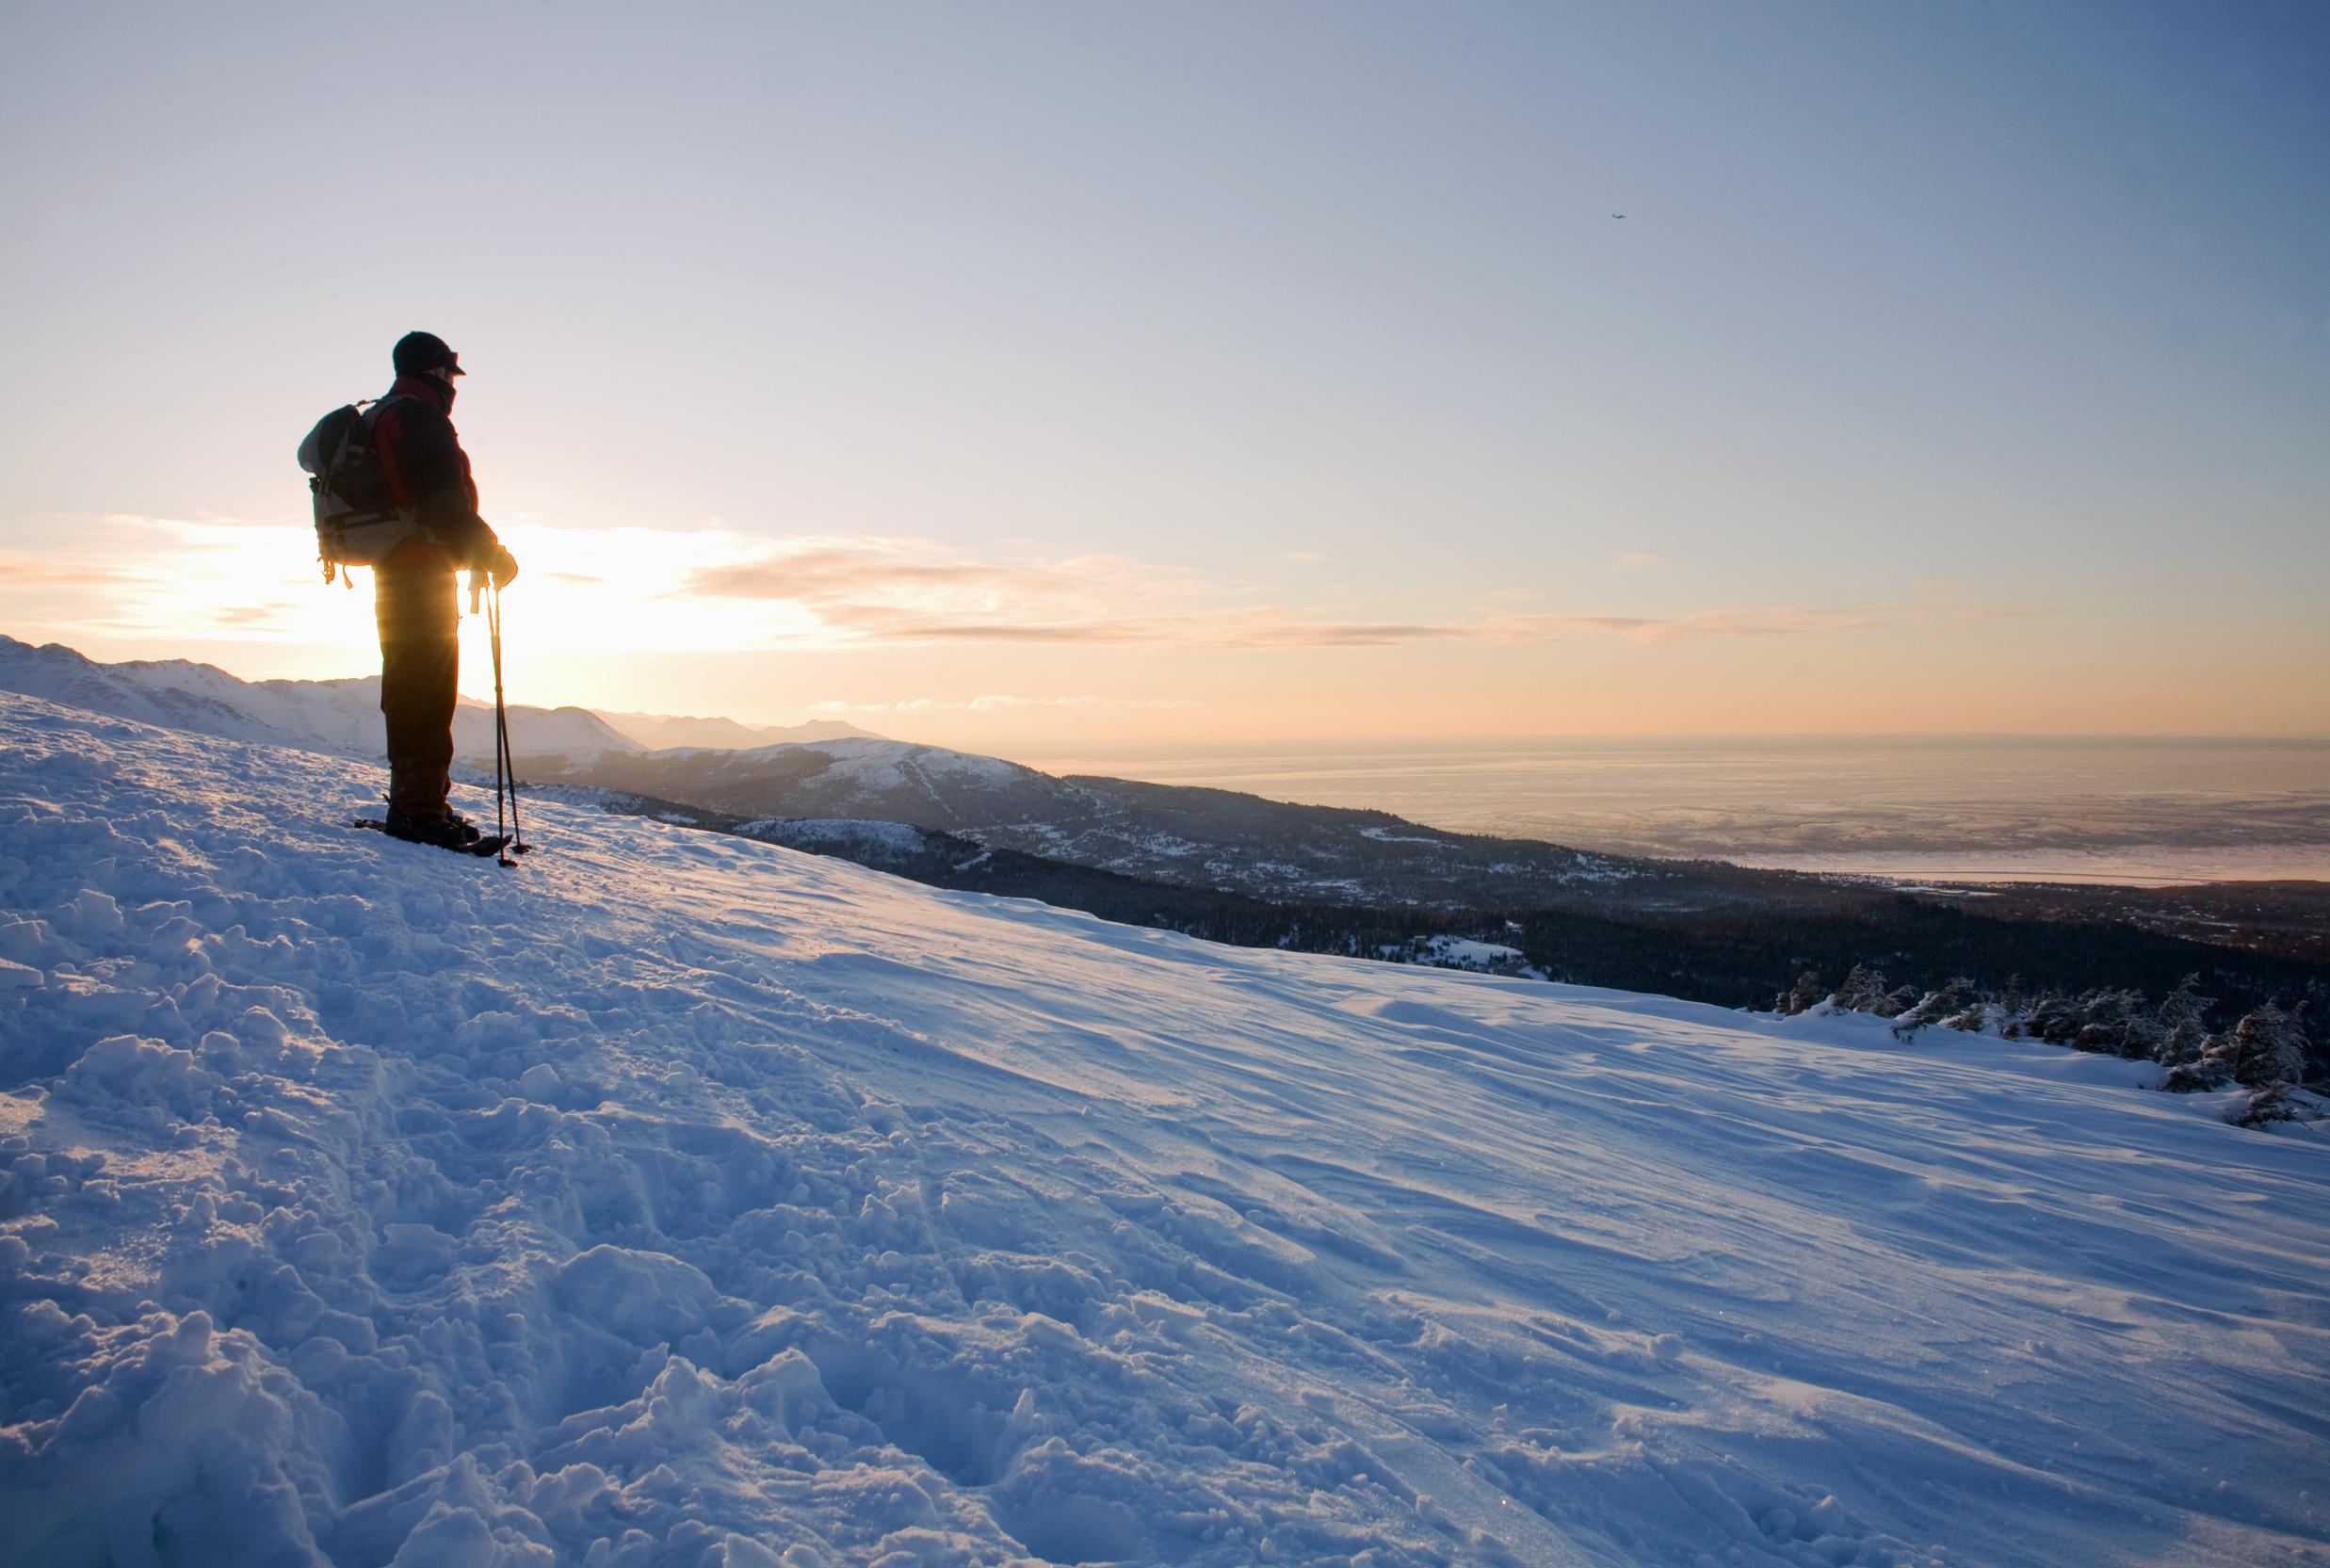 A cross country skier takes in the view from the hills of Glen Alps overlooking Anchorage, Alaska.